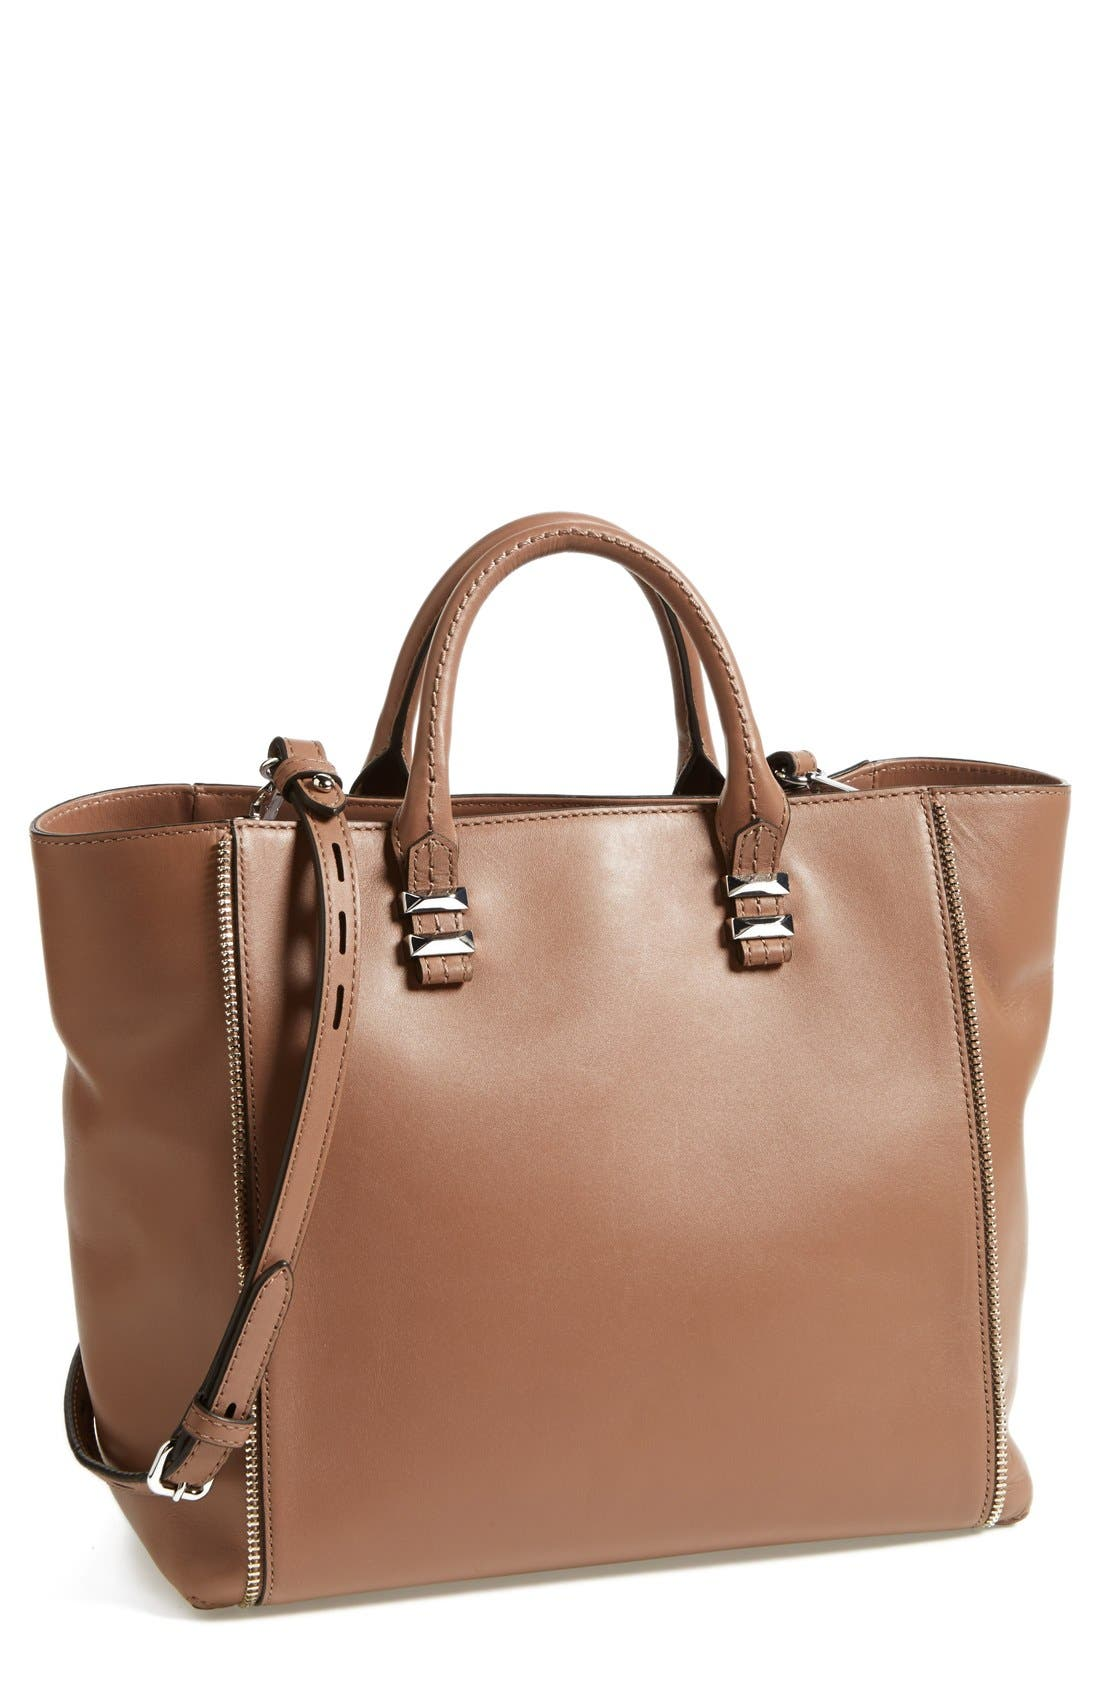 Alternate Image 1 Selected - Rebecca Minkoff 'Mini Perry' Tote